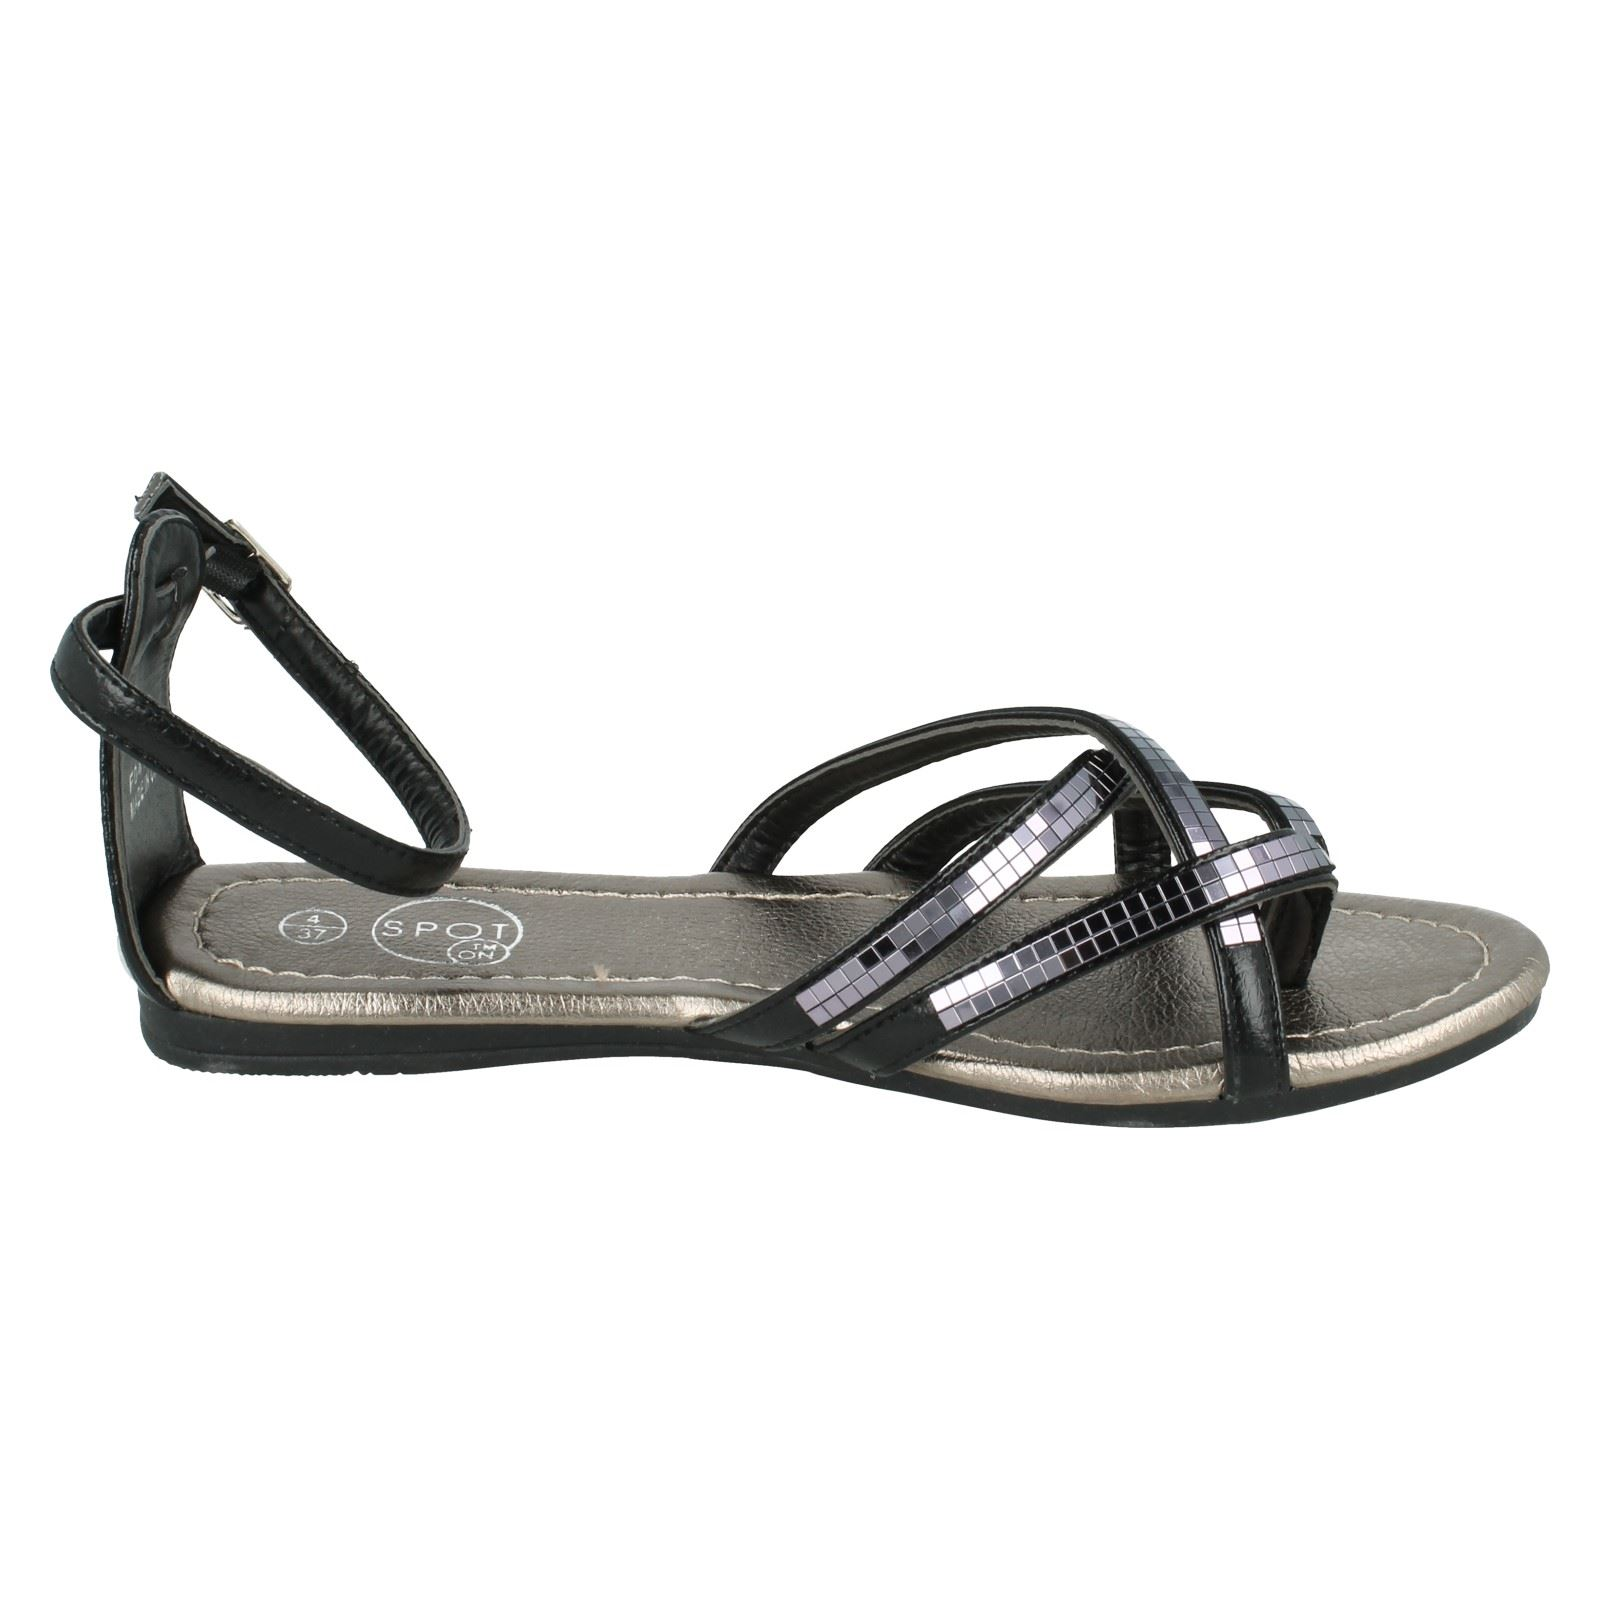 Damas Spot On Sandalias De Estilo-F0415